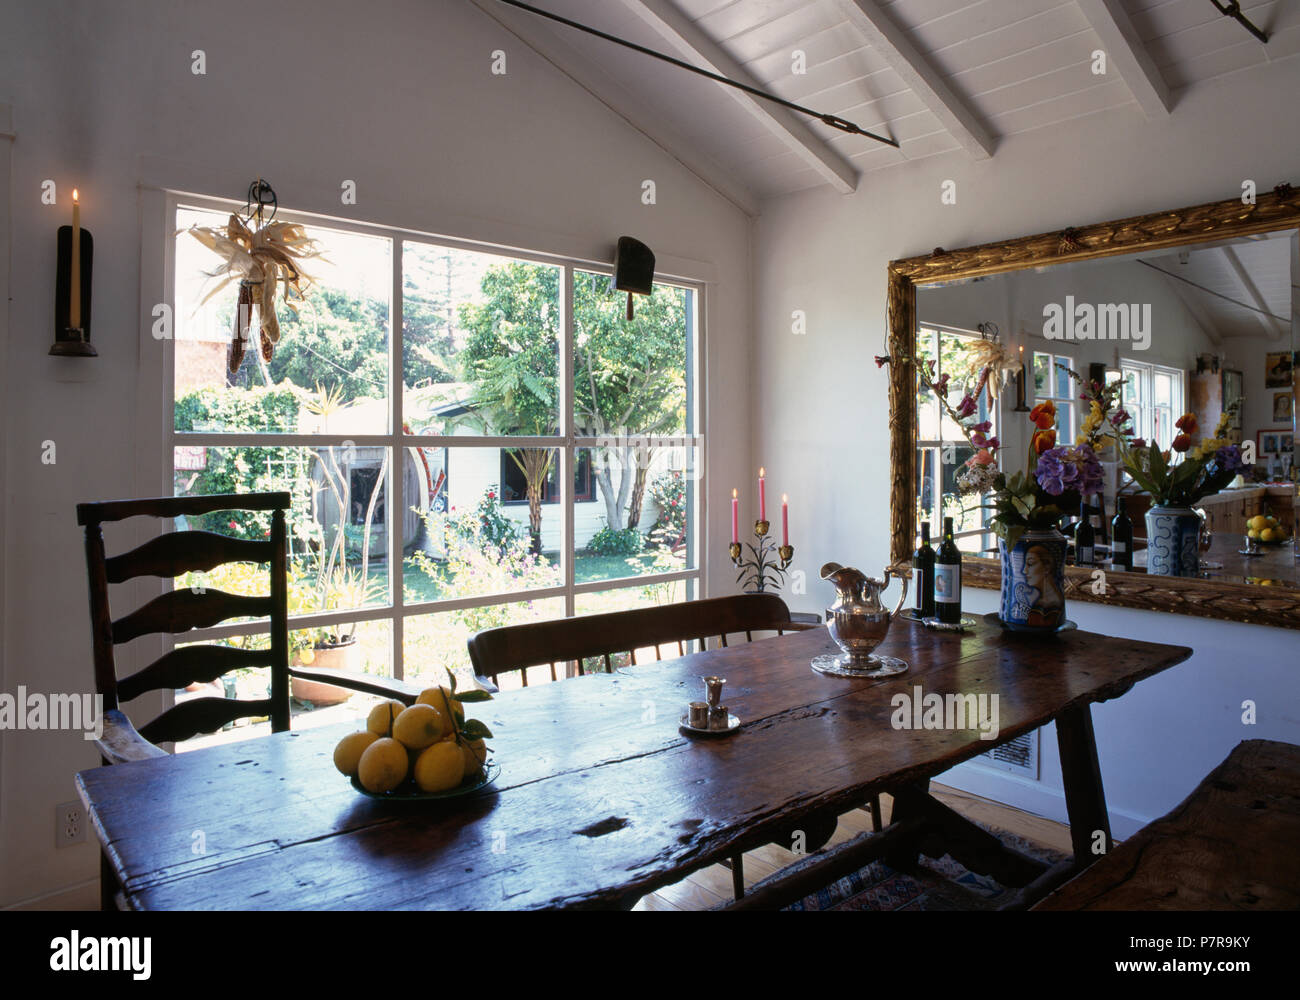 Assorted Wooden Chairs And Rustic Wooden Table In White Californian Dining Room With Mirror And Large Window Stock Photo Alamy